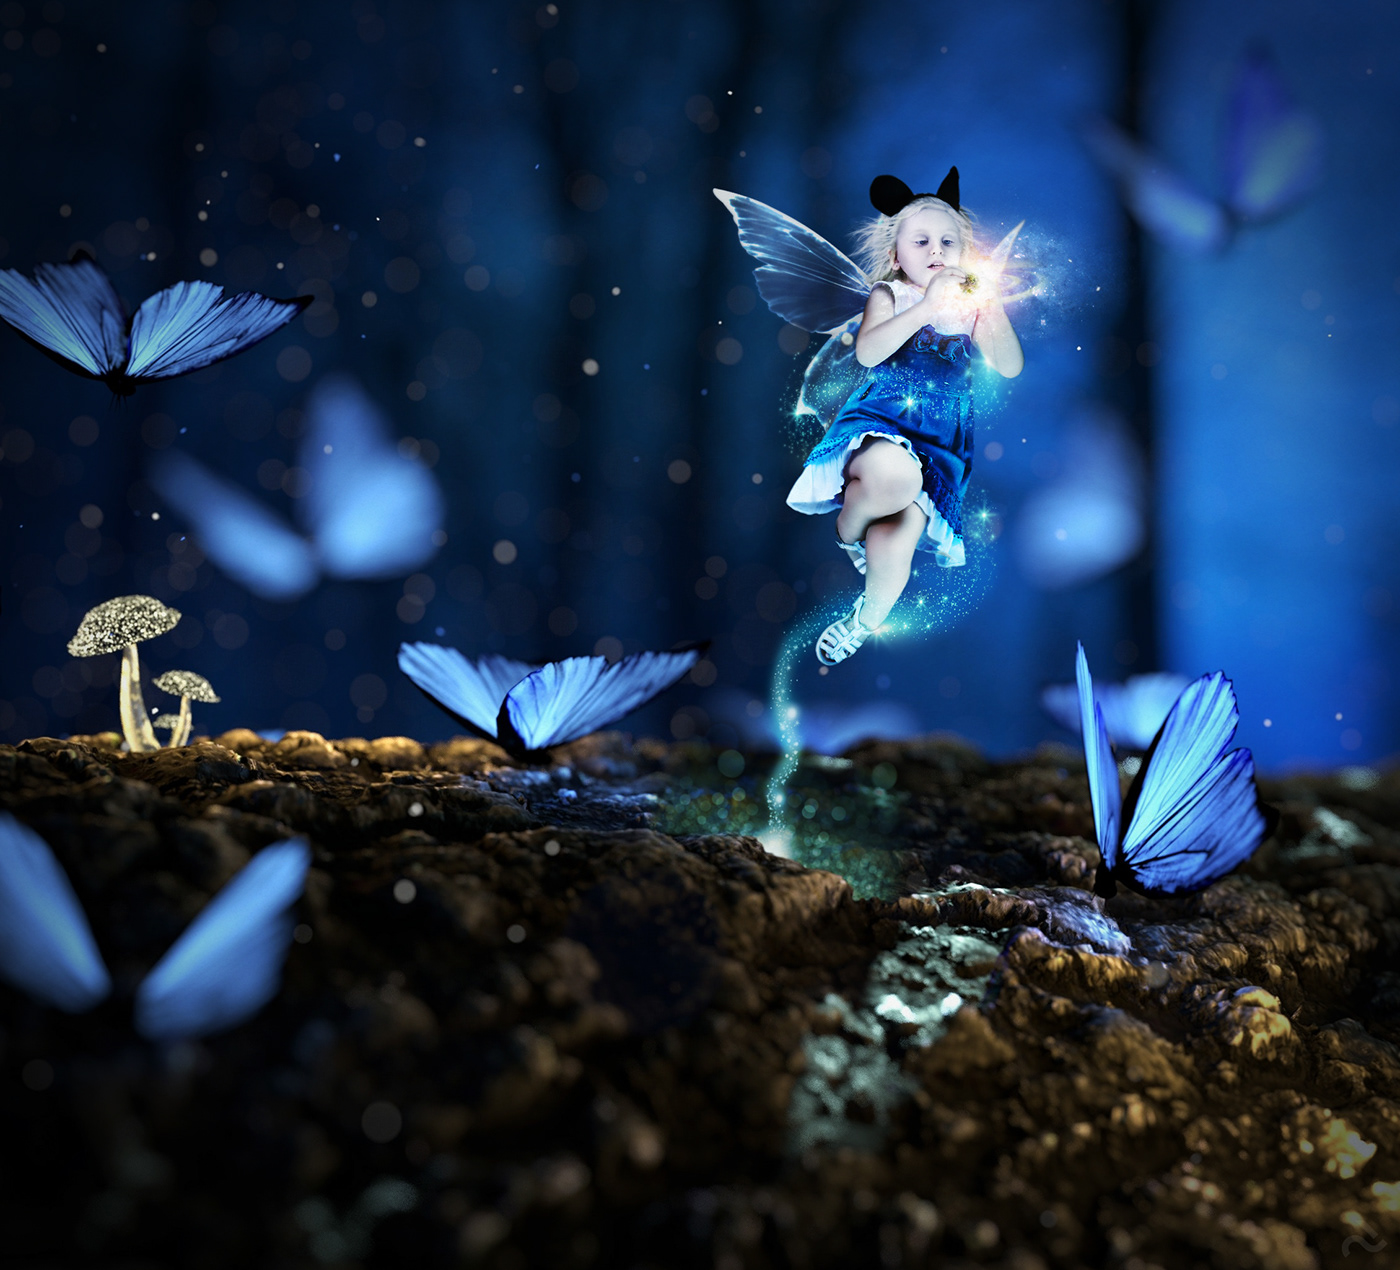 photoshop Photo Manipulation  retouching  Magic   eerie forest fantasy faery butterfly creation